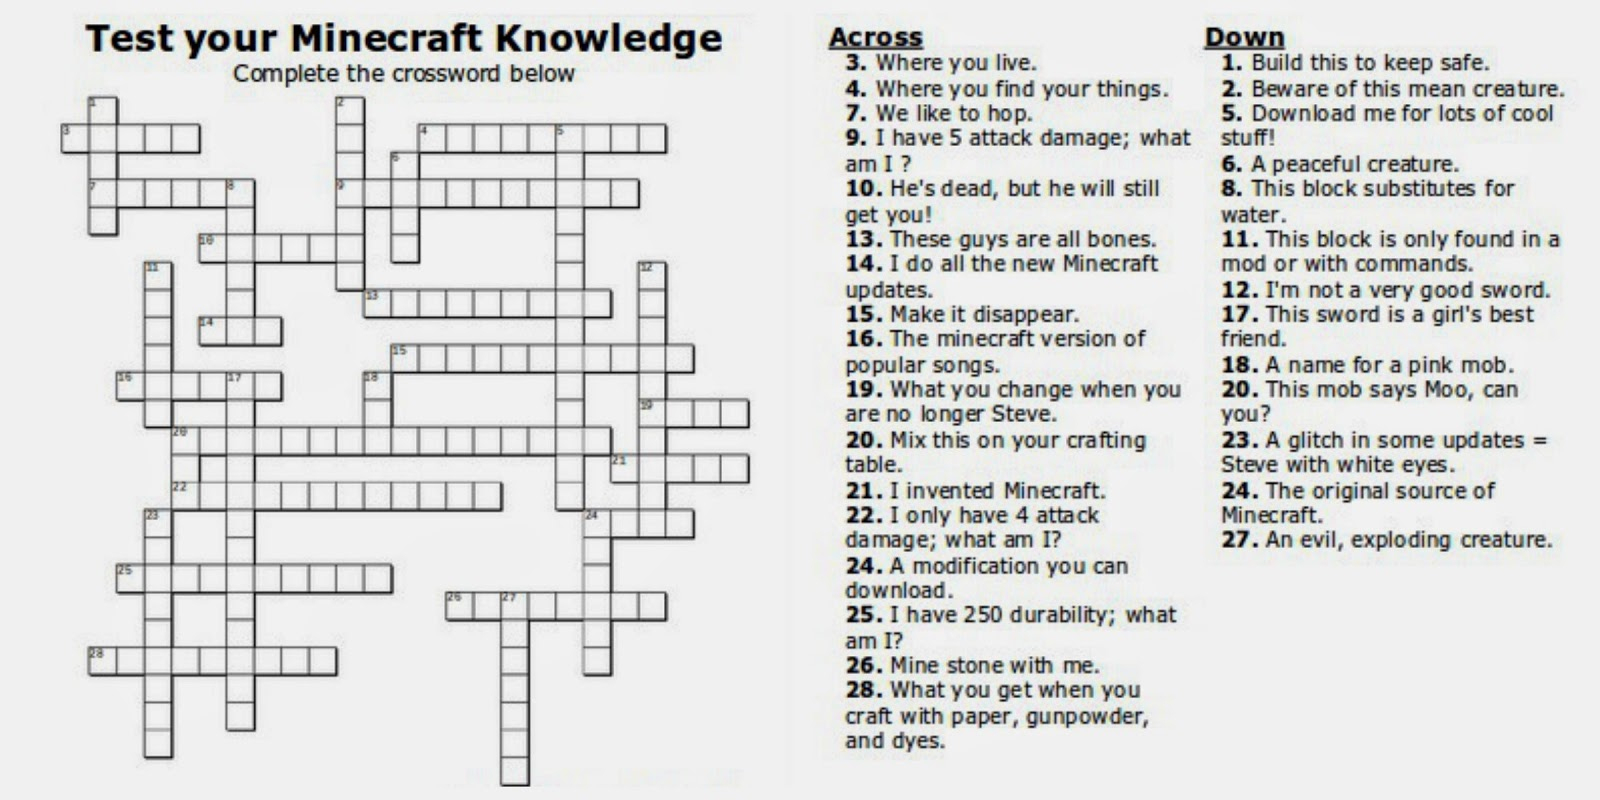 Free Printable Minecraft Crossword Search: Test Your Minecraft - Printable Youth Crossword Puzzles